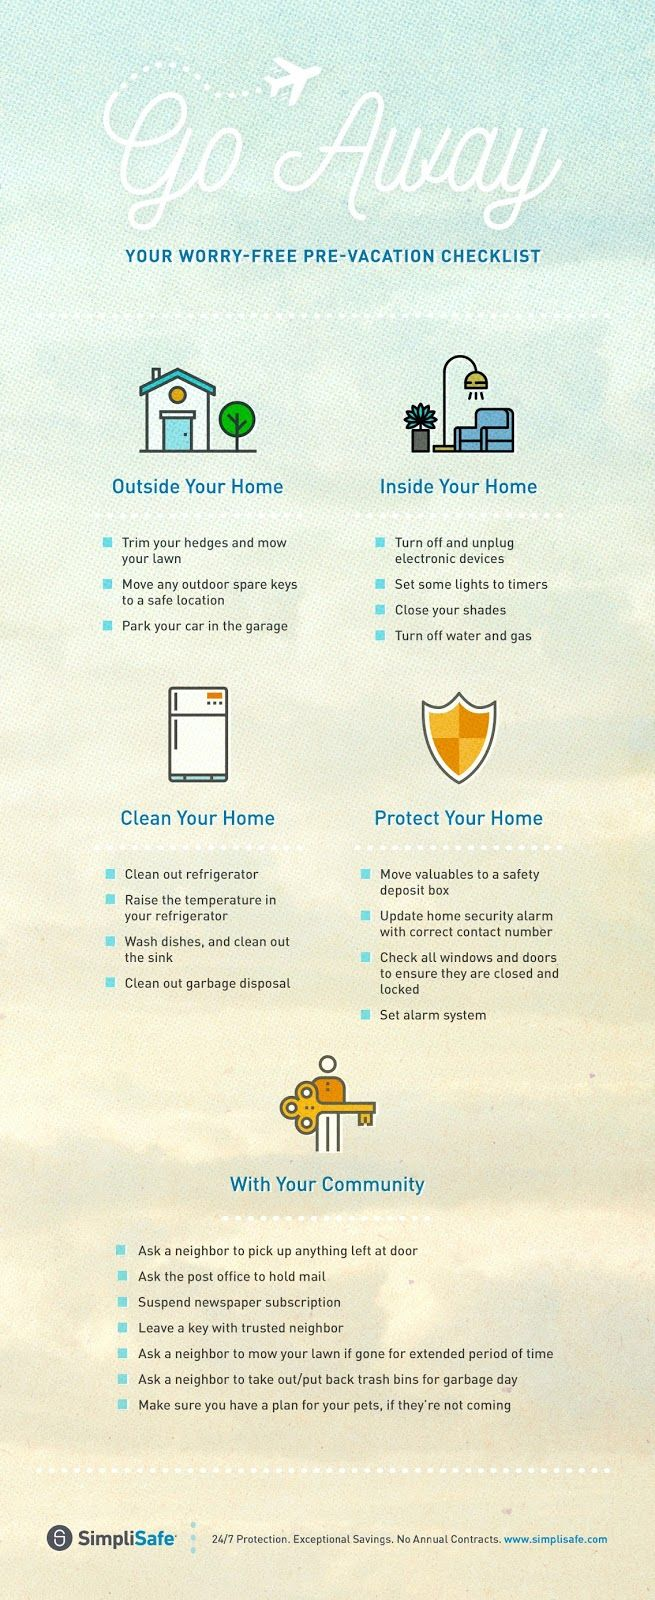 Know Your Home is Safe While Traveling Internationally   Safety